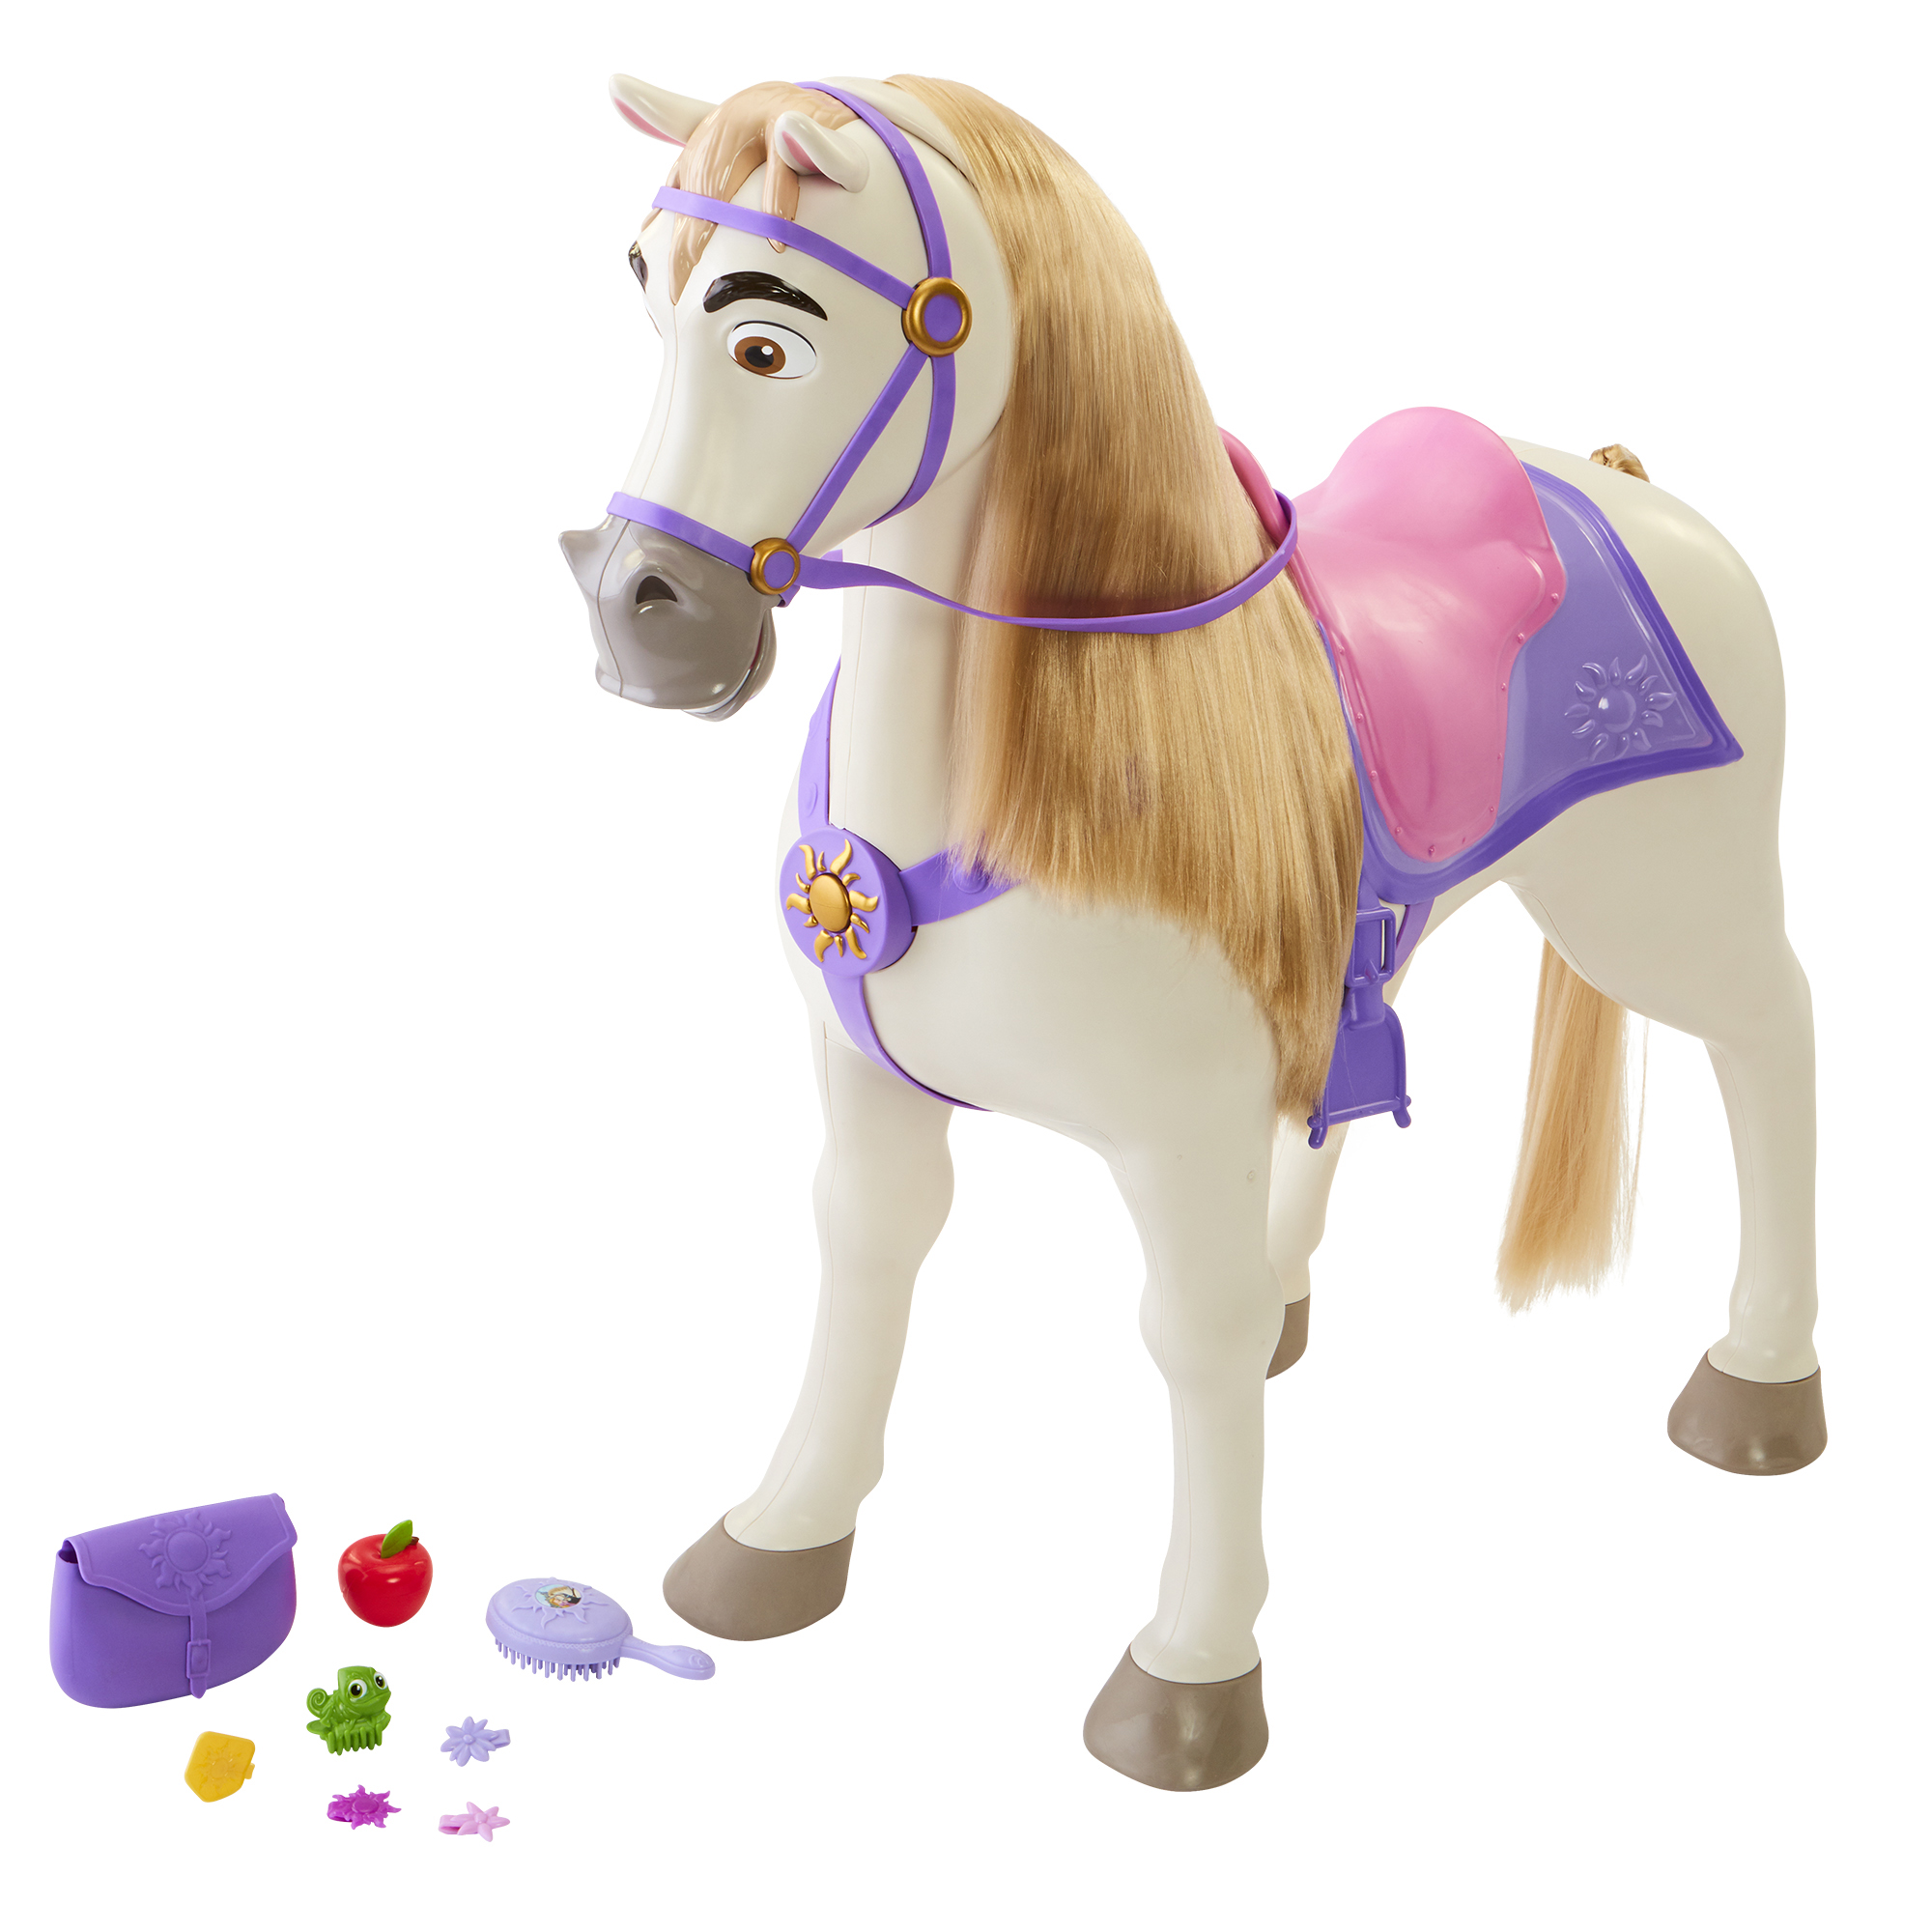 Playdate Maximus Horse Disney Princess